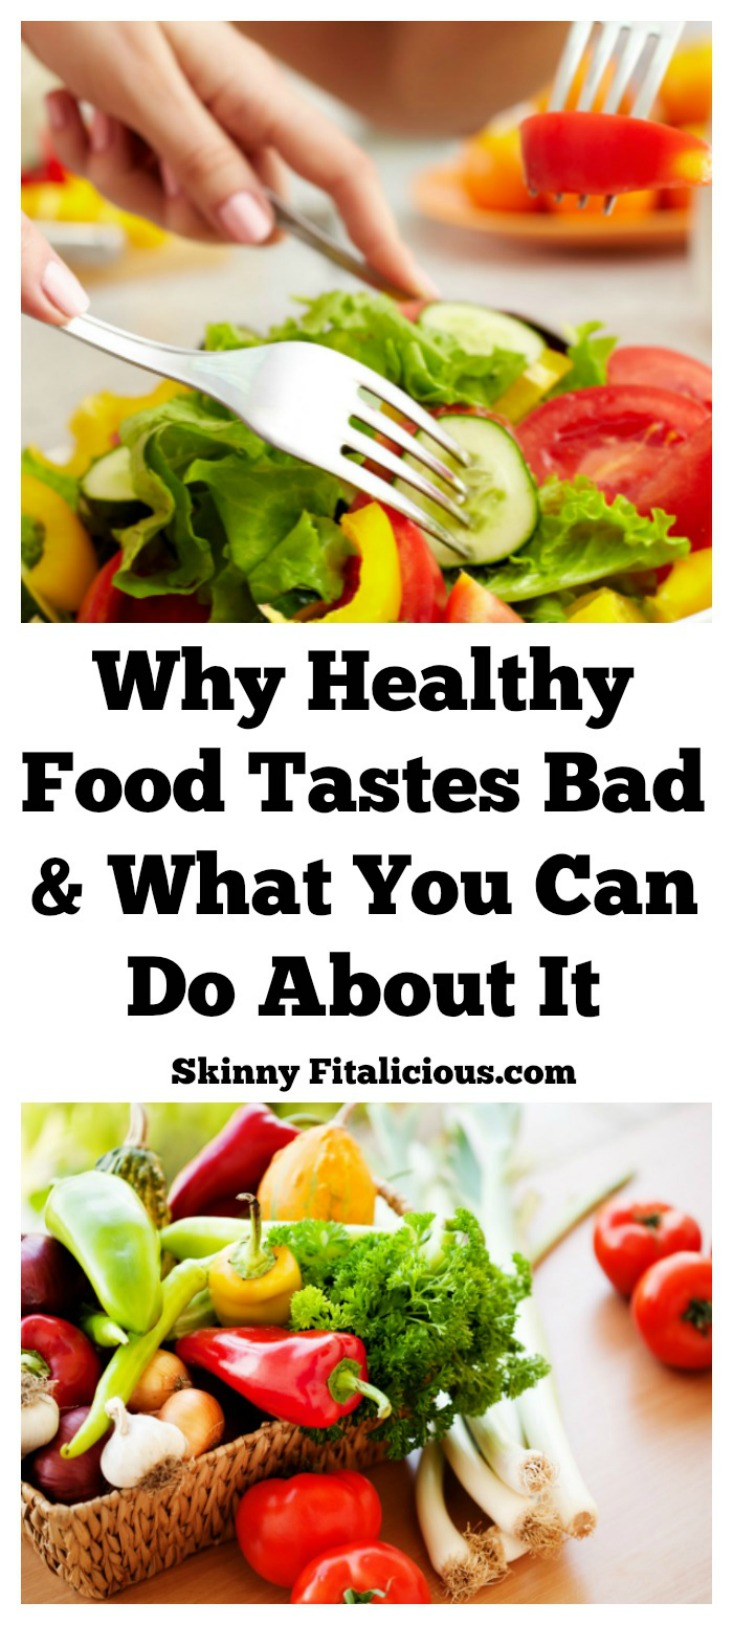 There's no doubt healthy food tastes good. Not that many people are faking liking it. What you have to ask yourself is why healthy food tastes bad to you?